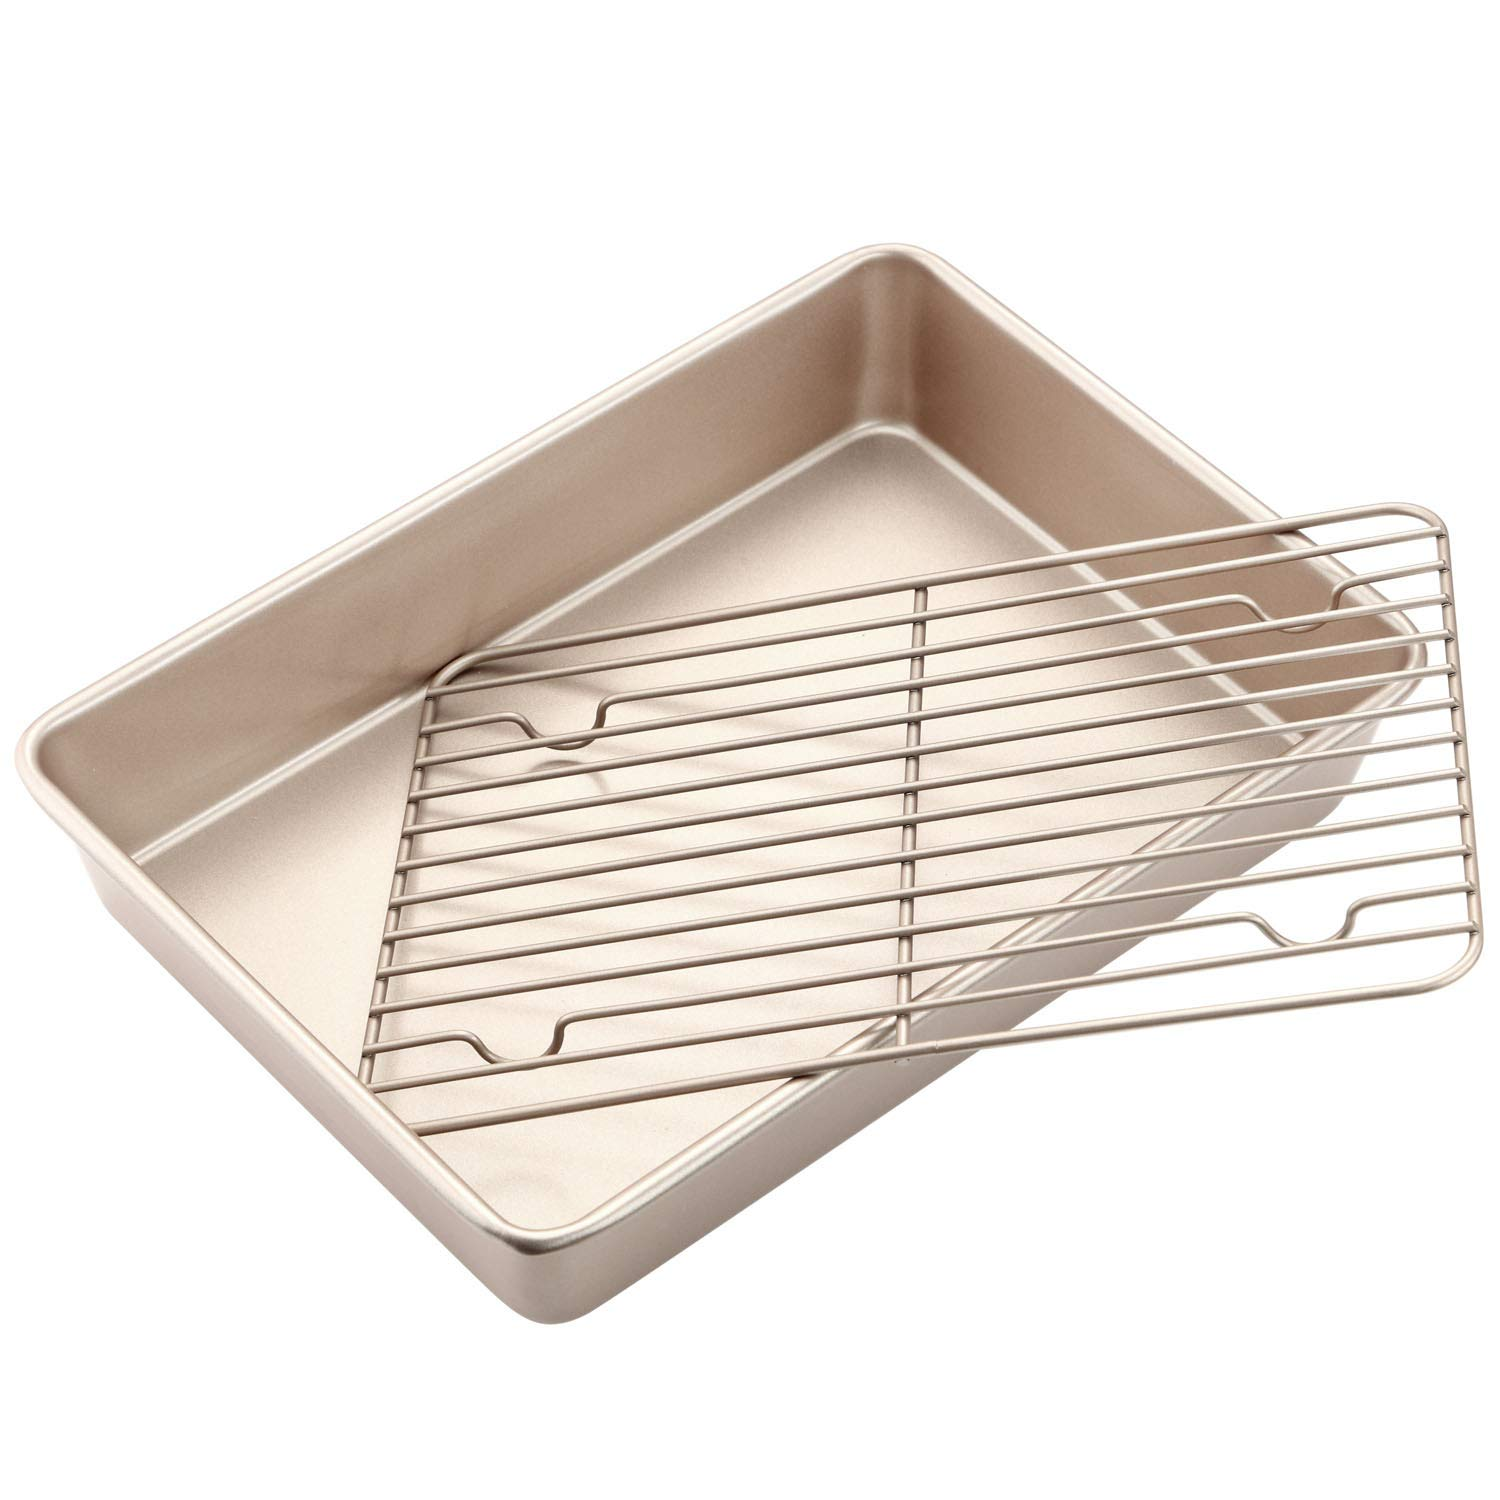 CHEFMADE Roasting Pan with Rack, 13-Inch Non-Stick Rectangular Deep Dish Oven-BBQ Bakeware, FDA Approved for Oven Baking (Champagne Gold) by CHEFMADE